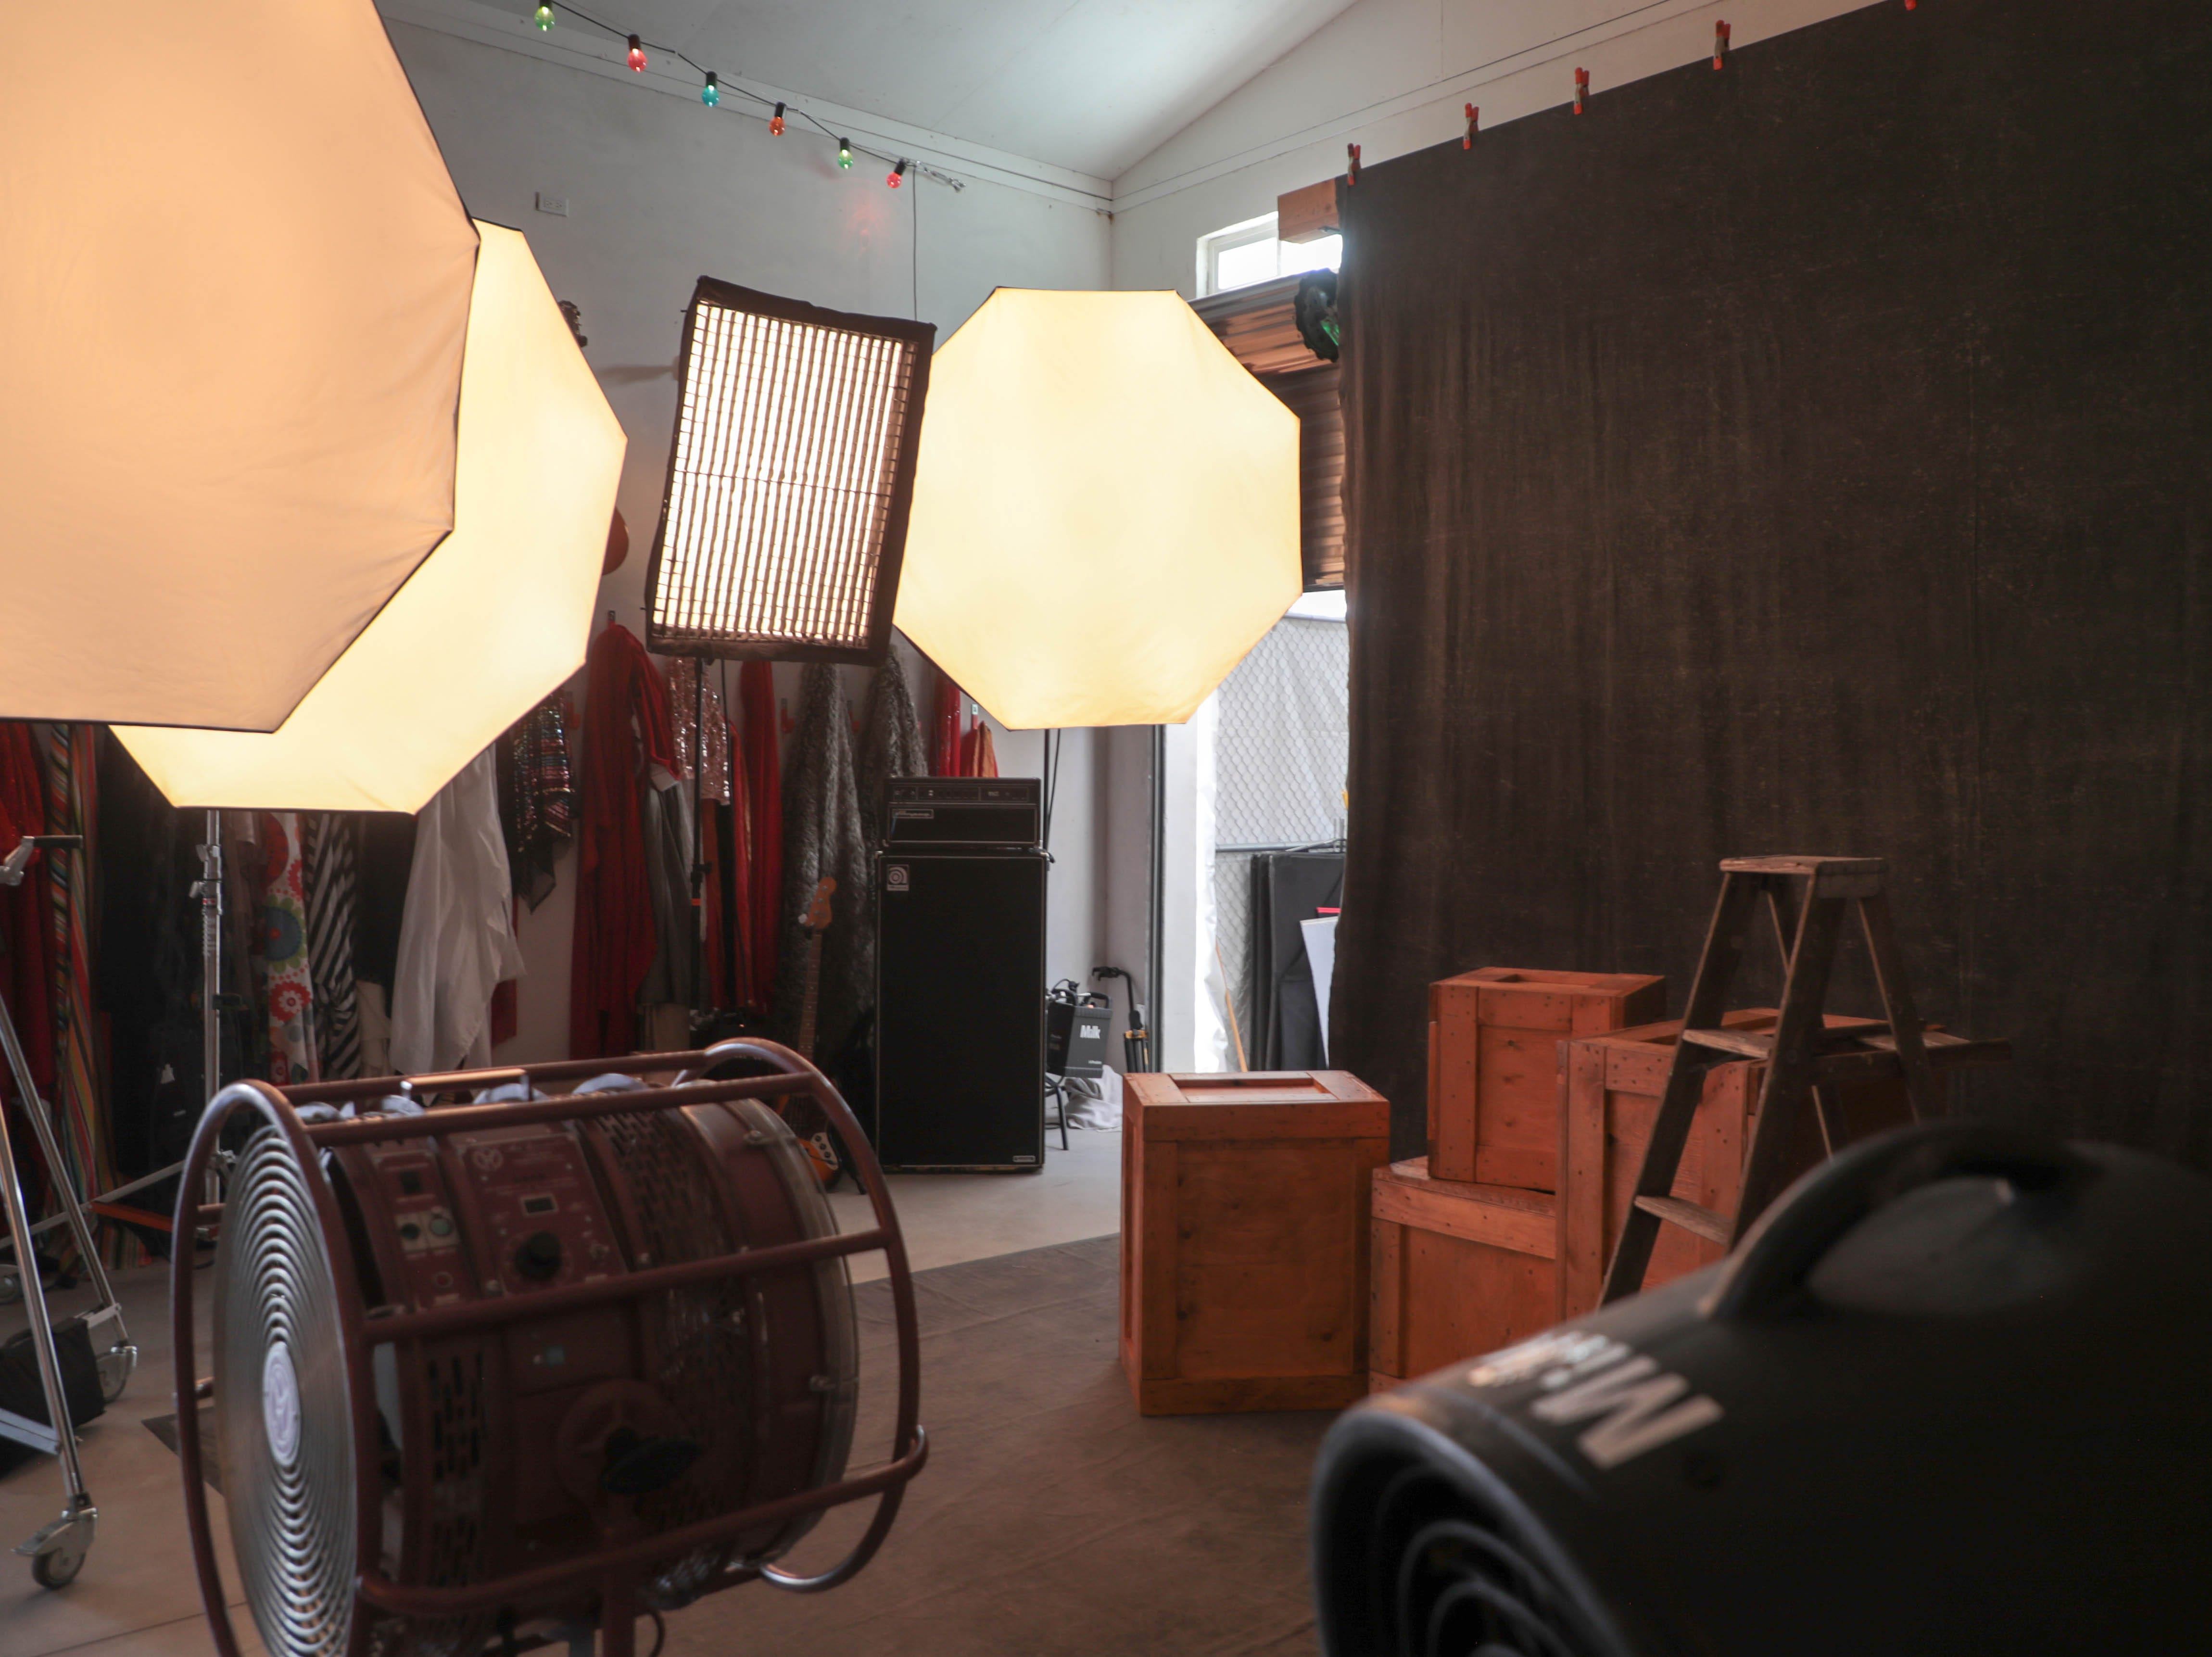 Lighting equipment and props sit in the studio of Andrew Haagen, who has been photographing artists in his photo tent at the Coachella Valley Music and Arts Festival in Indio, Calif. since the inception of the festival.